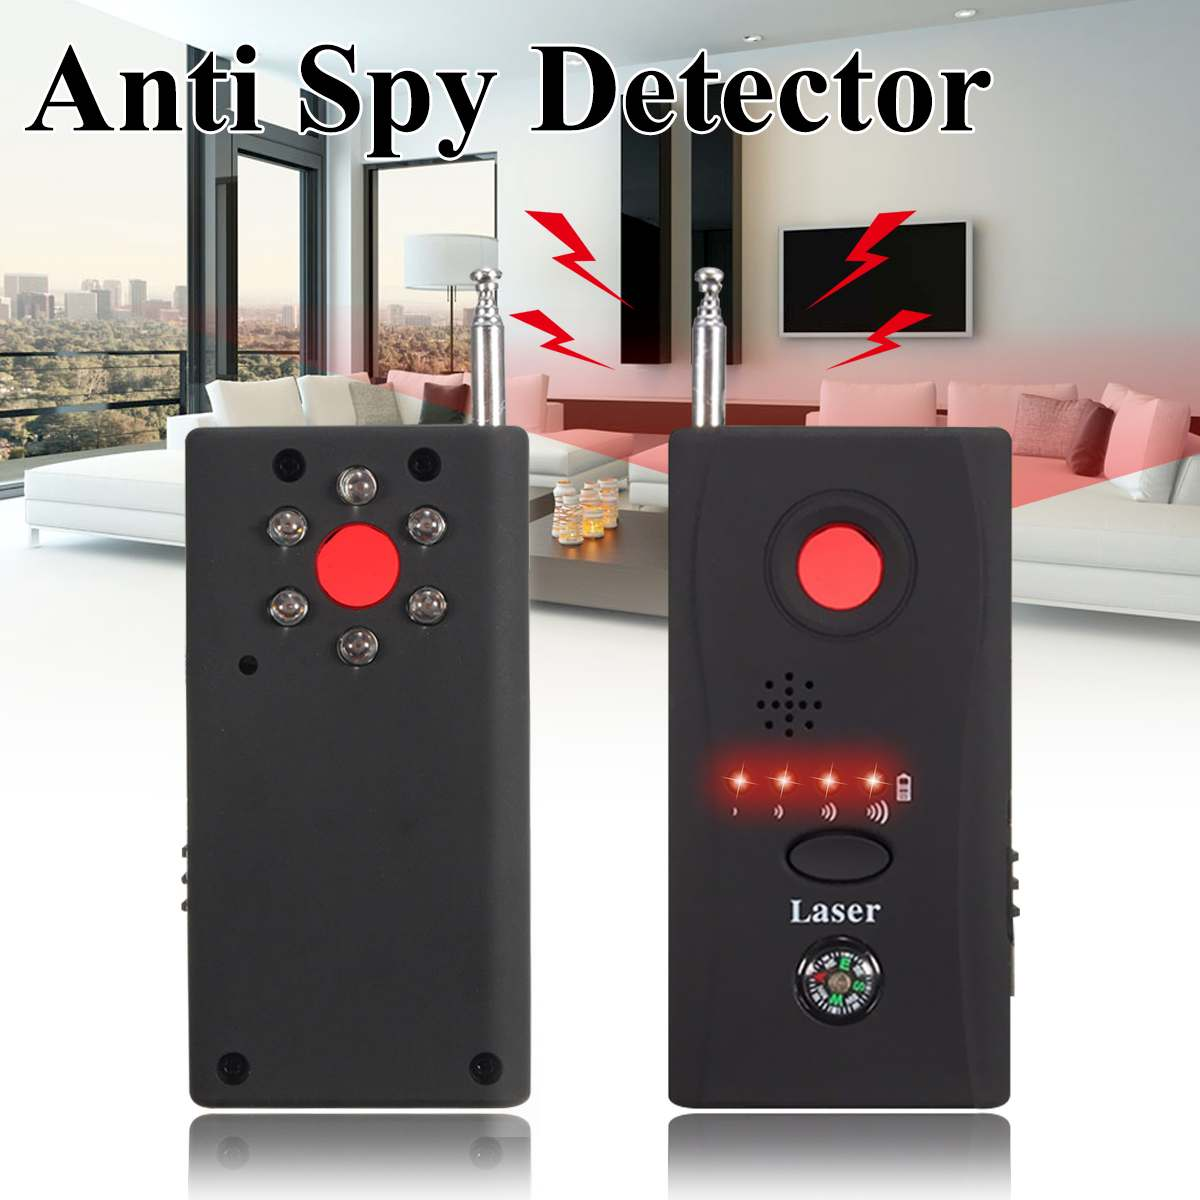 Anti Spys Bug Detector Mini Wireless Camera Hiddens Signal GSM Device Finder for Privacy Protect SecurityAnti Spys Bug Detector Mini Wireless Camera Hiddens Signal GSM Device Finder for Privacy Protect Security